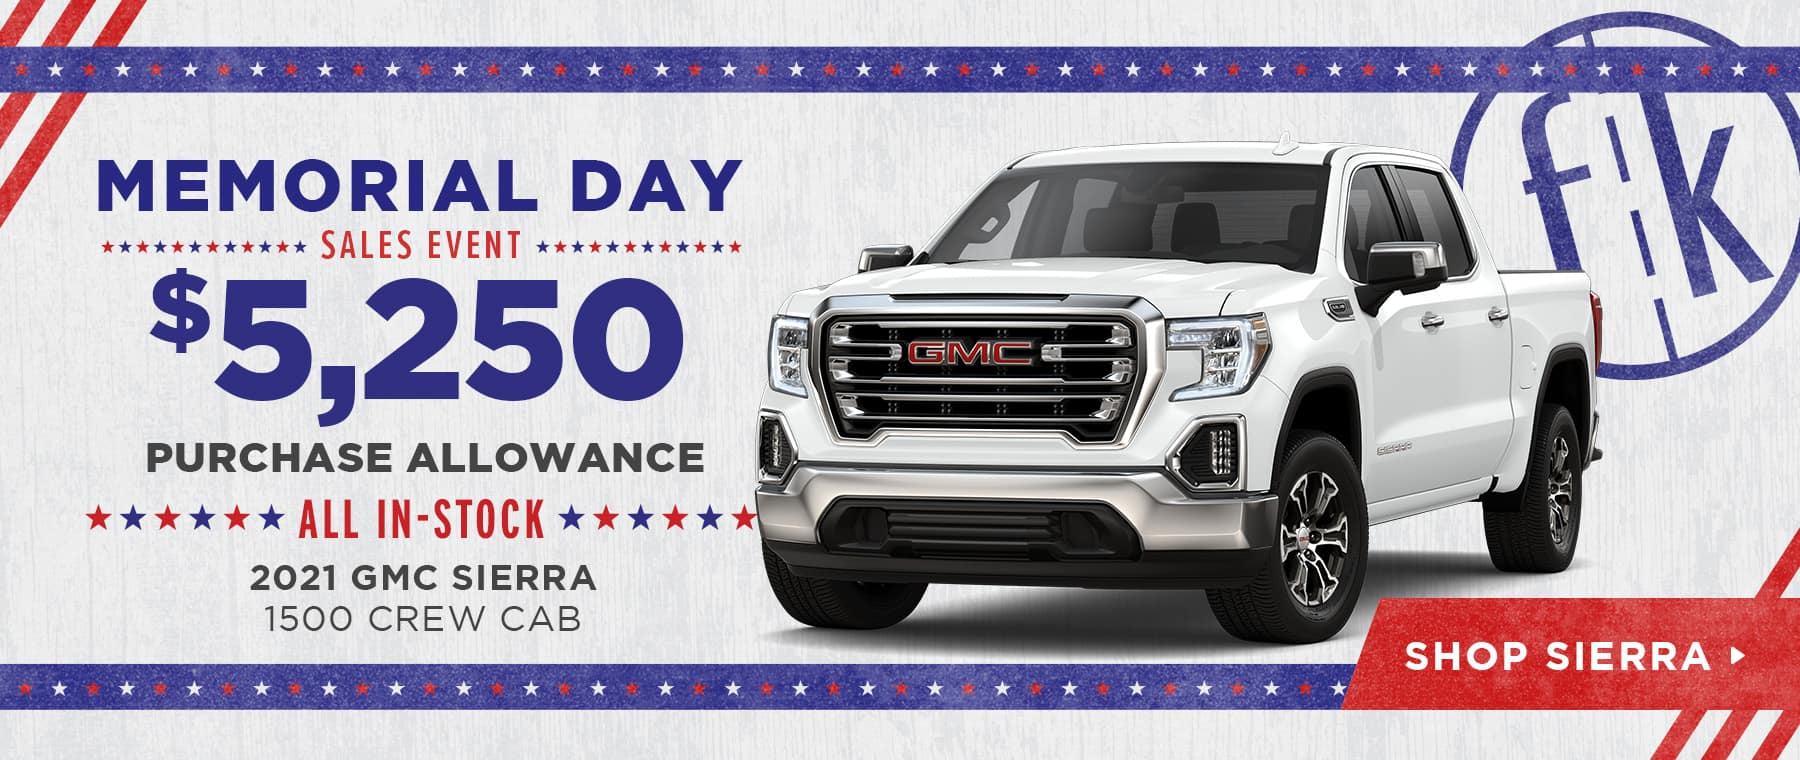 $5,250 Purchase Allowance All In-Stock 2021 GMC Sierra 1500 Crew Cab